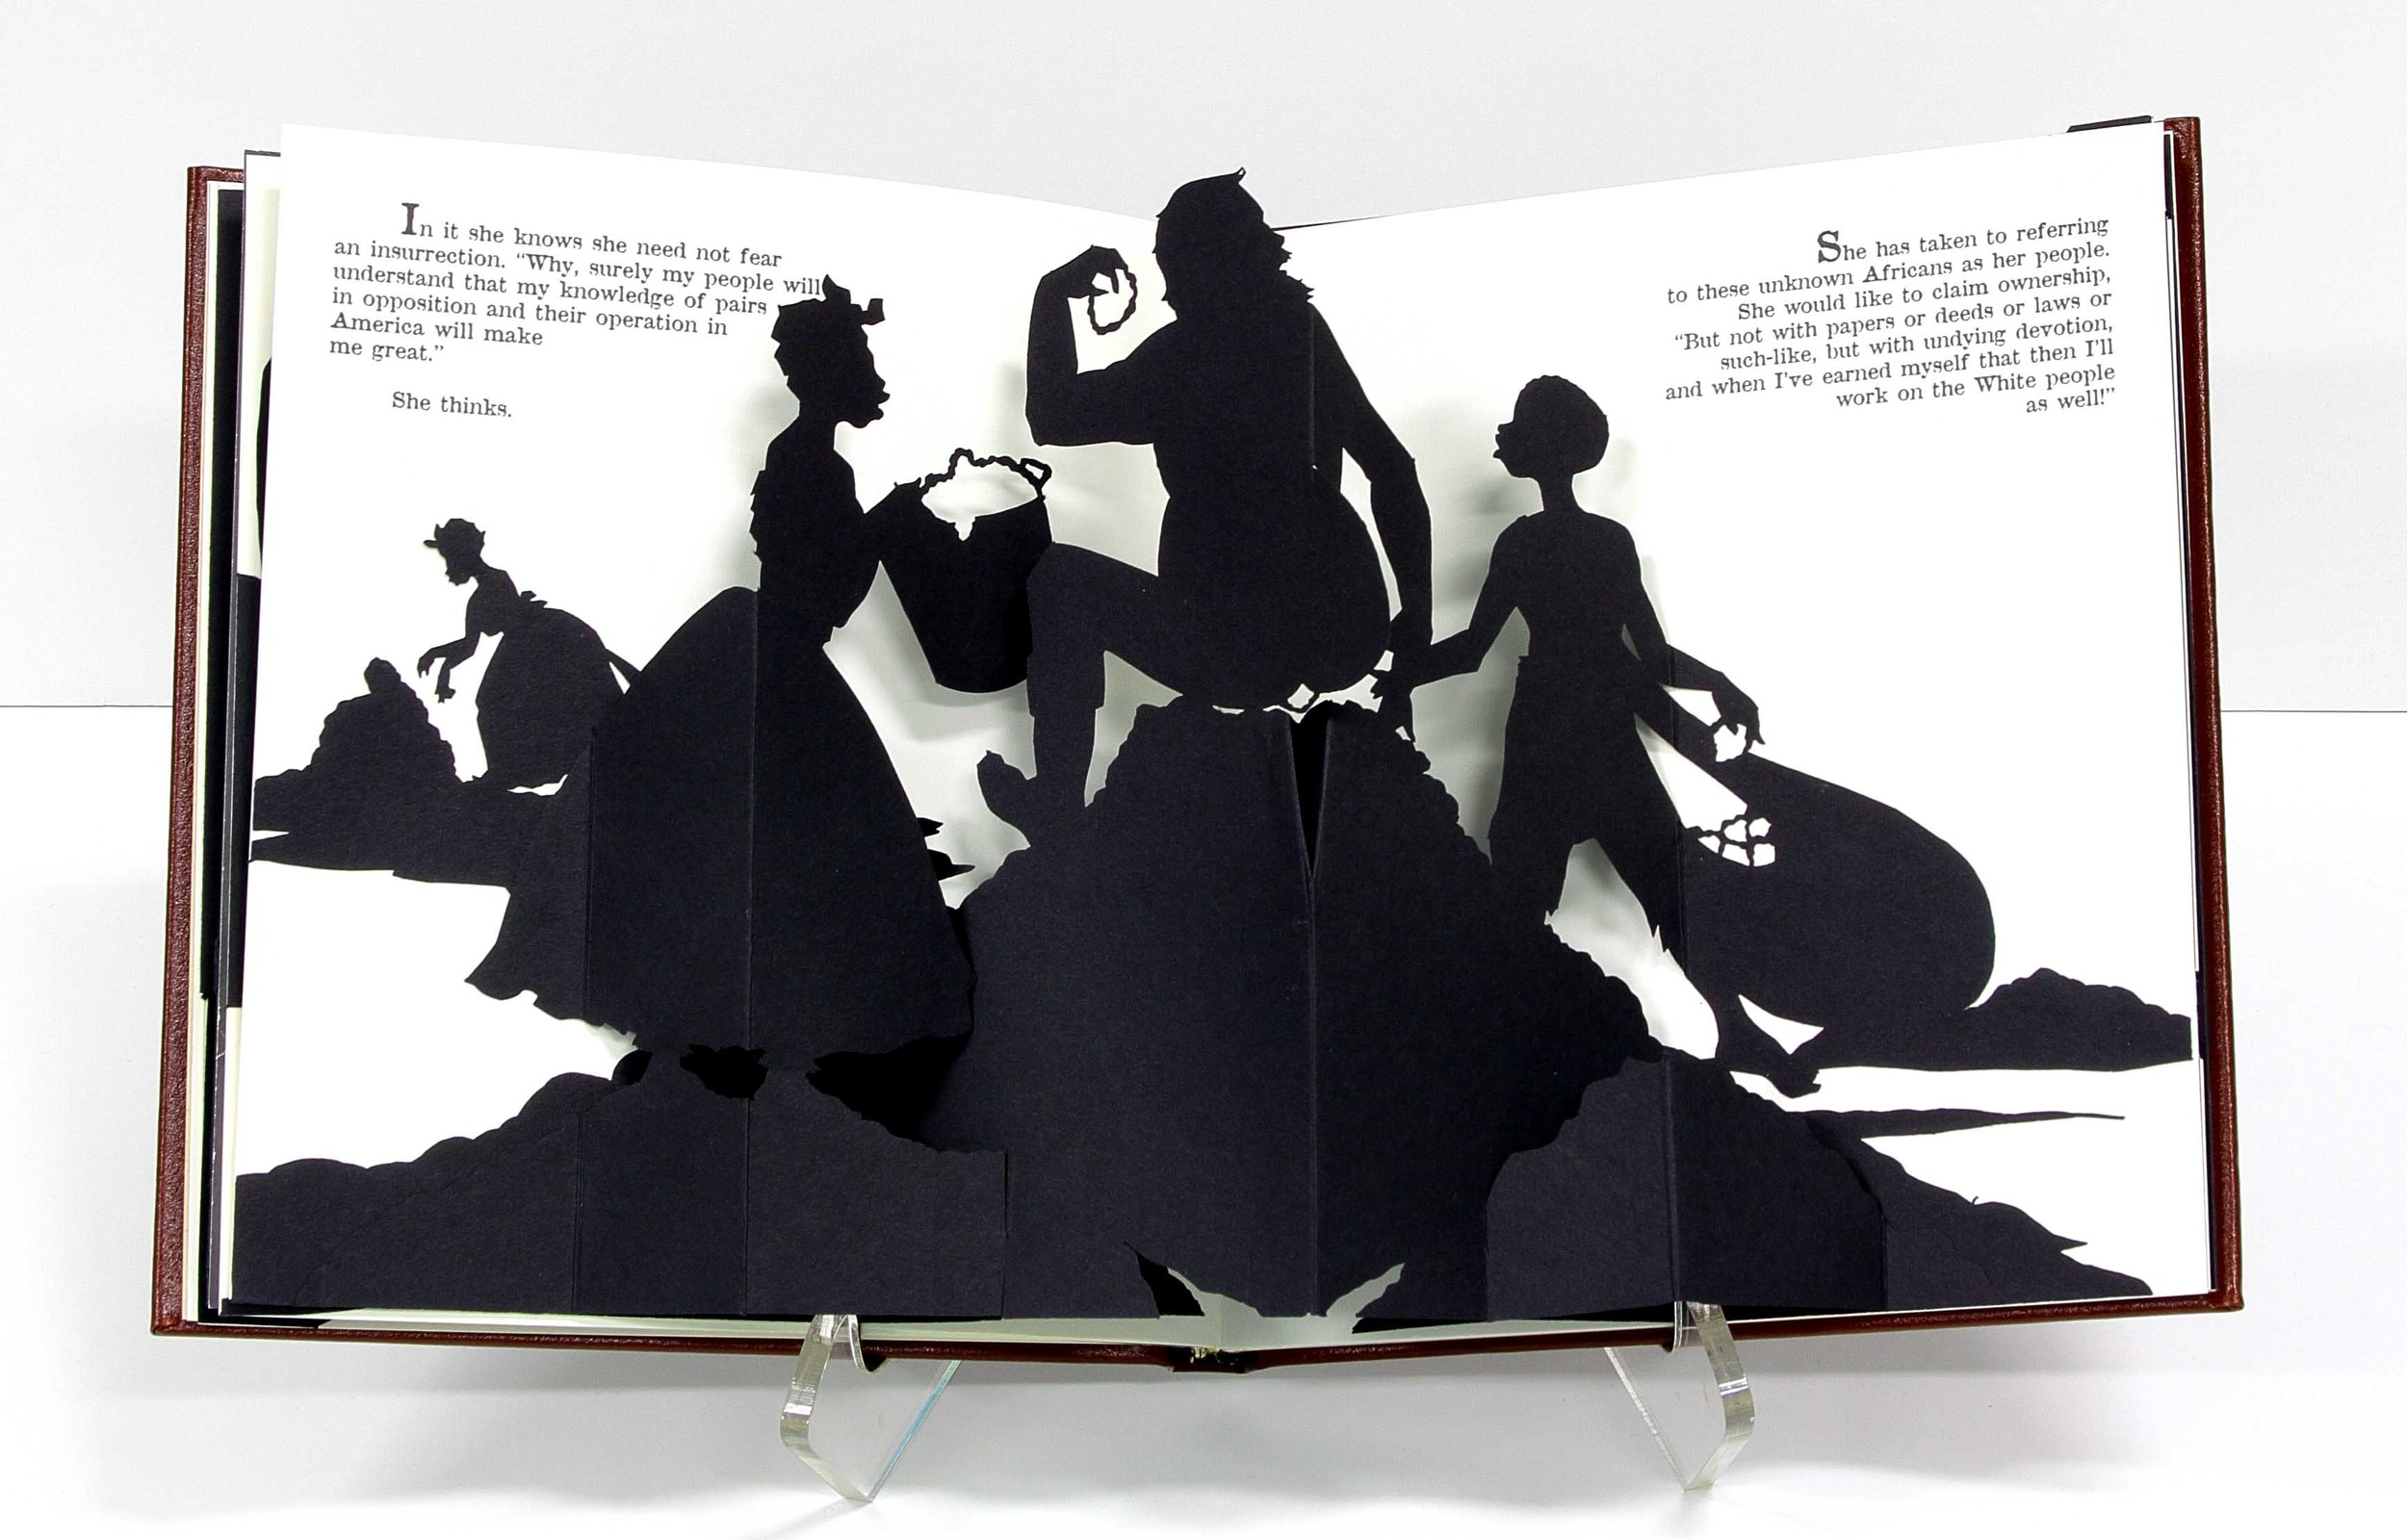 A book with 3D cardstock pop outs of people and mounds on the ground. A person sits on top of a mound with one person offering a bucket and another dragging a sack approaching.